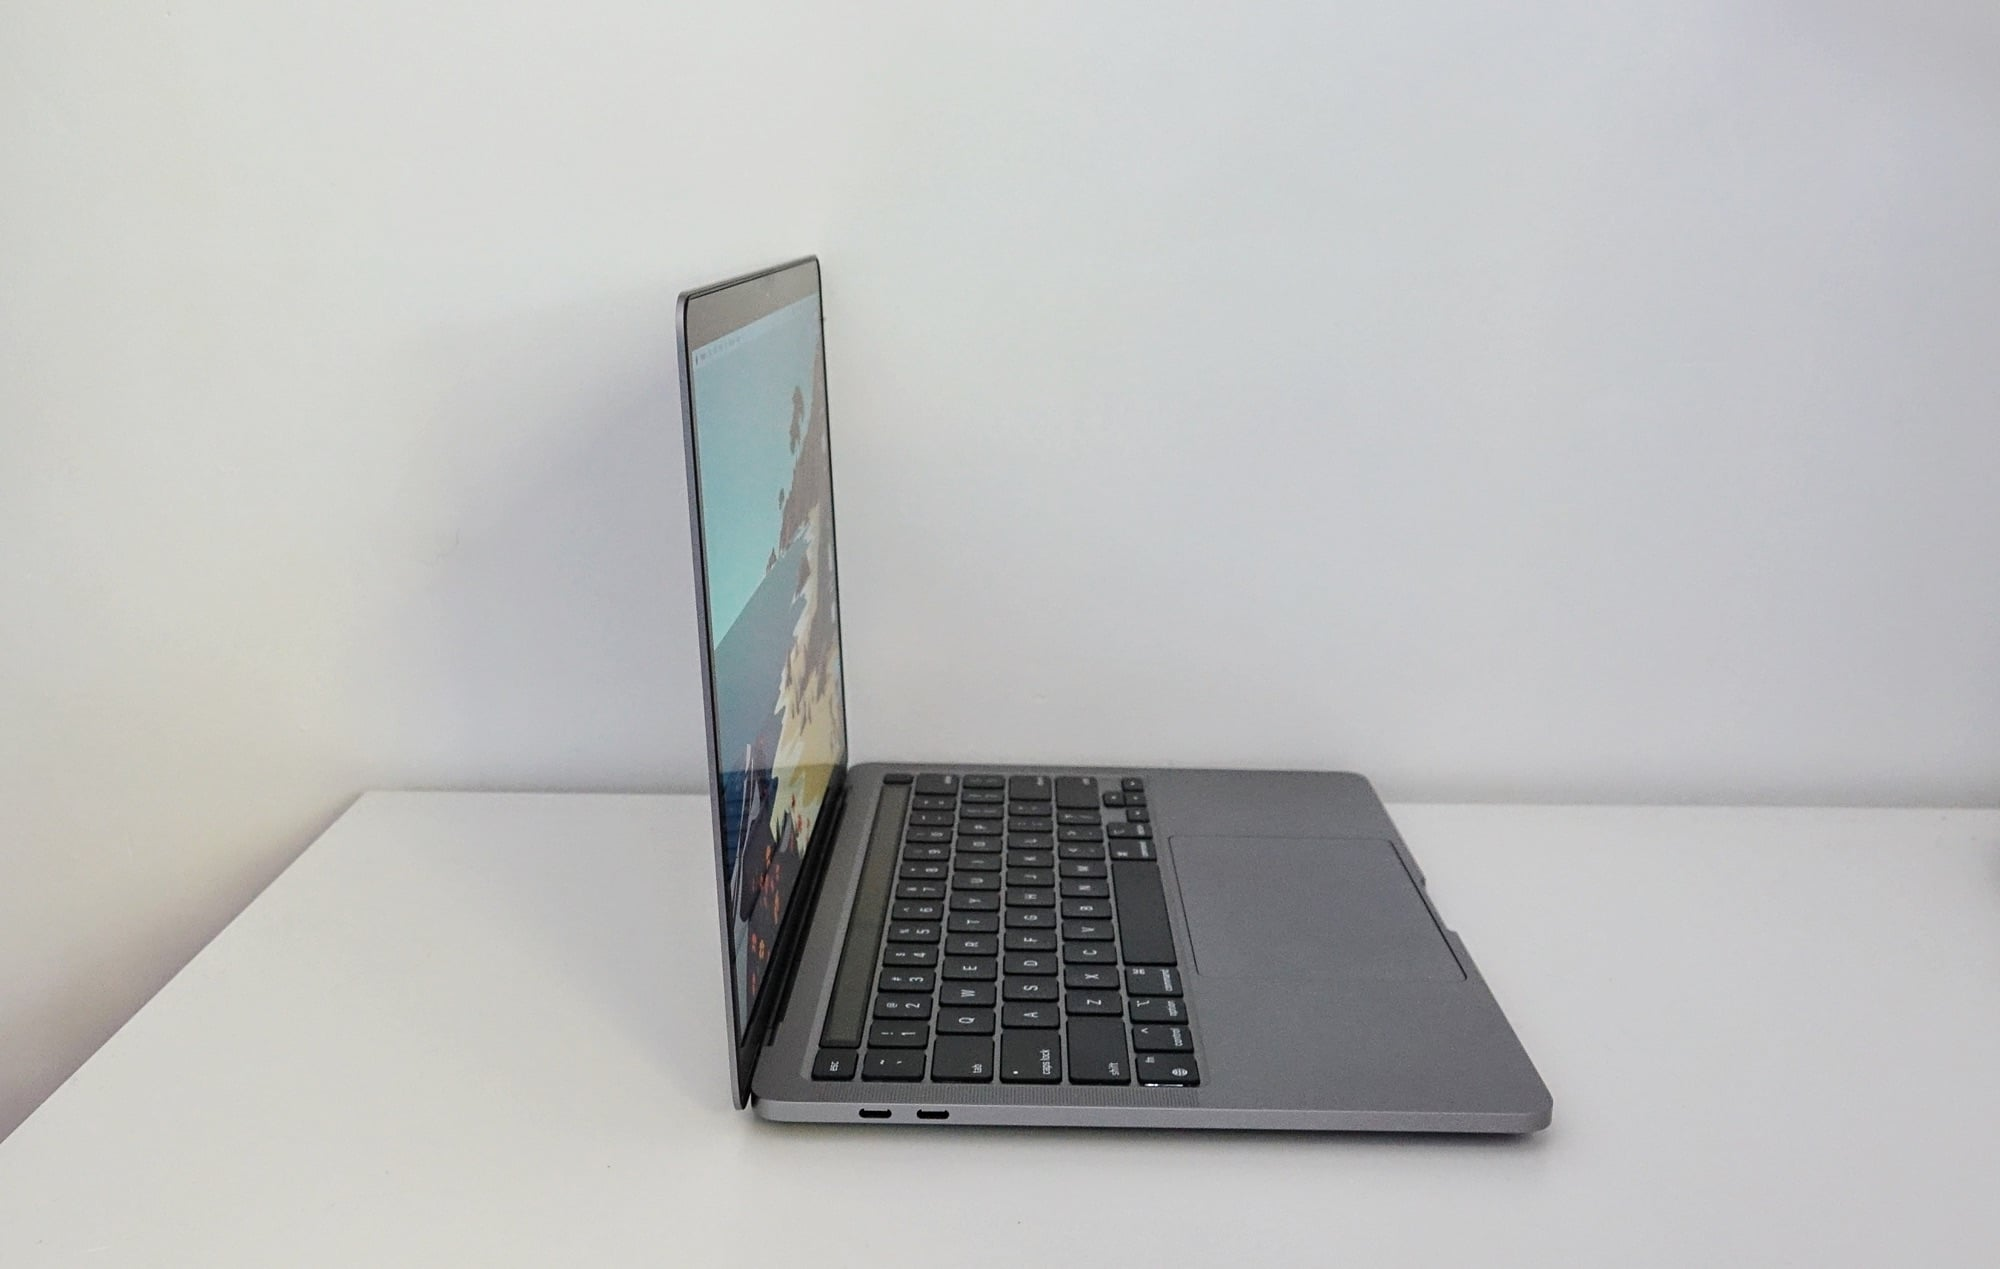 The M1 MacBook Pro from the side.